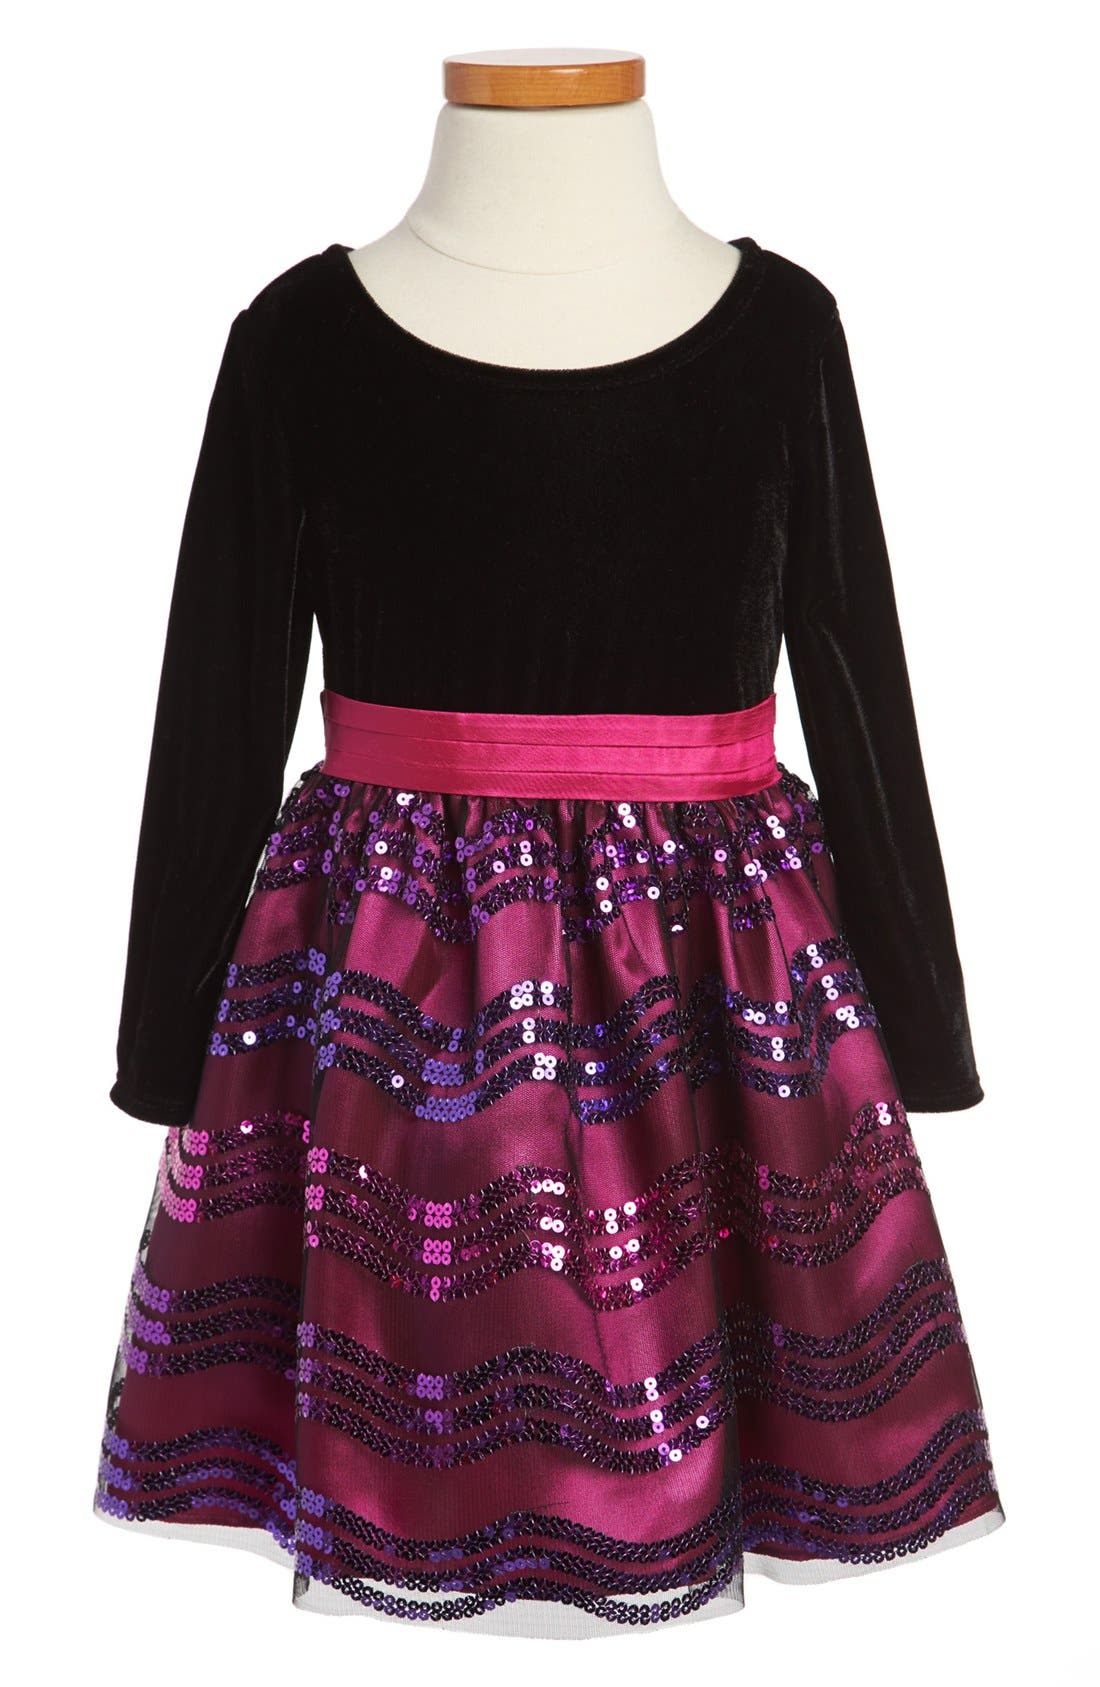 Main Image - Iris & Ivy Sequin Skirt Dress (Toddler Girls)